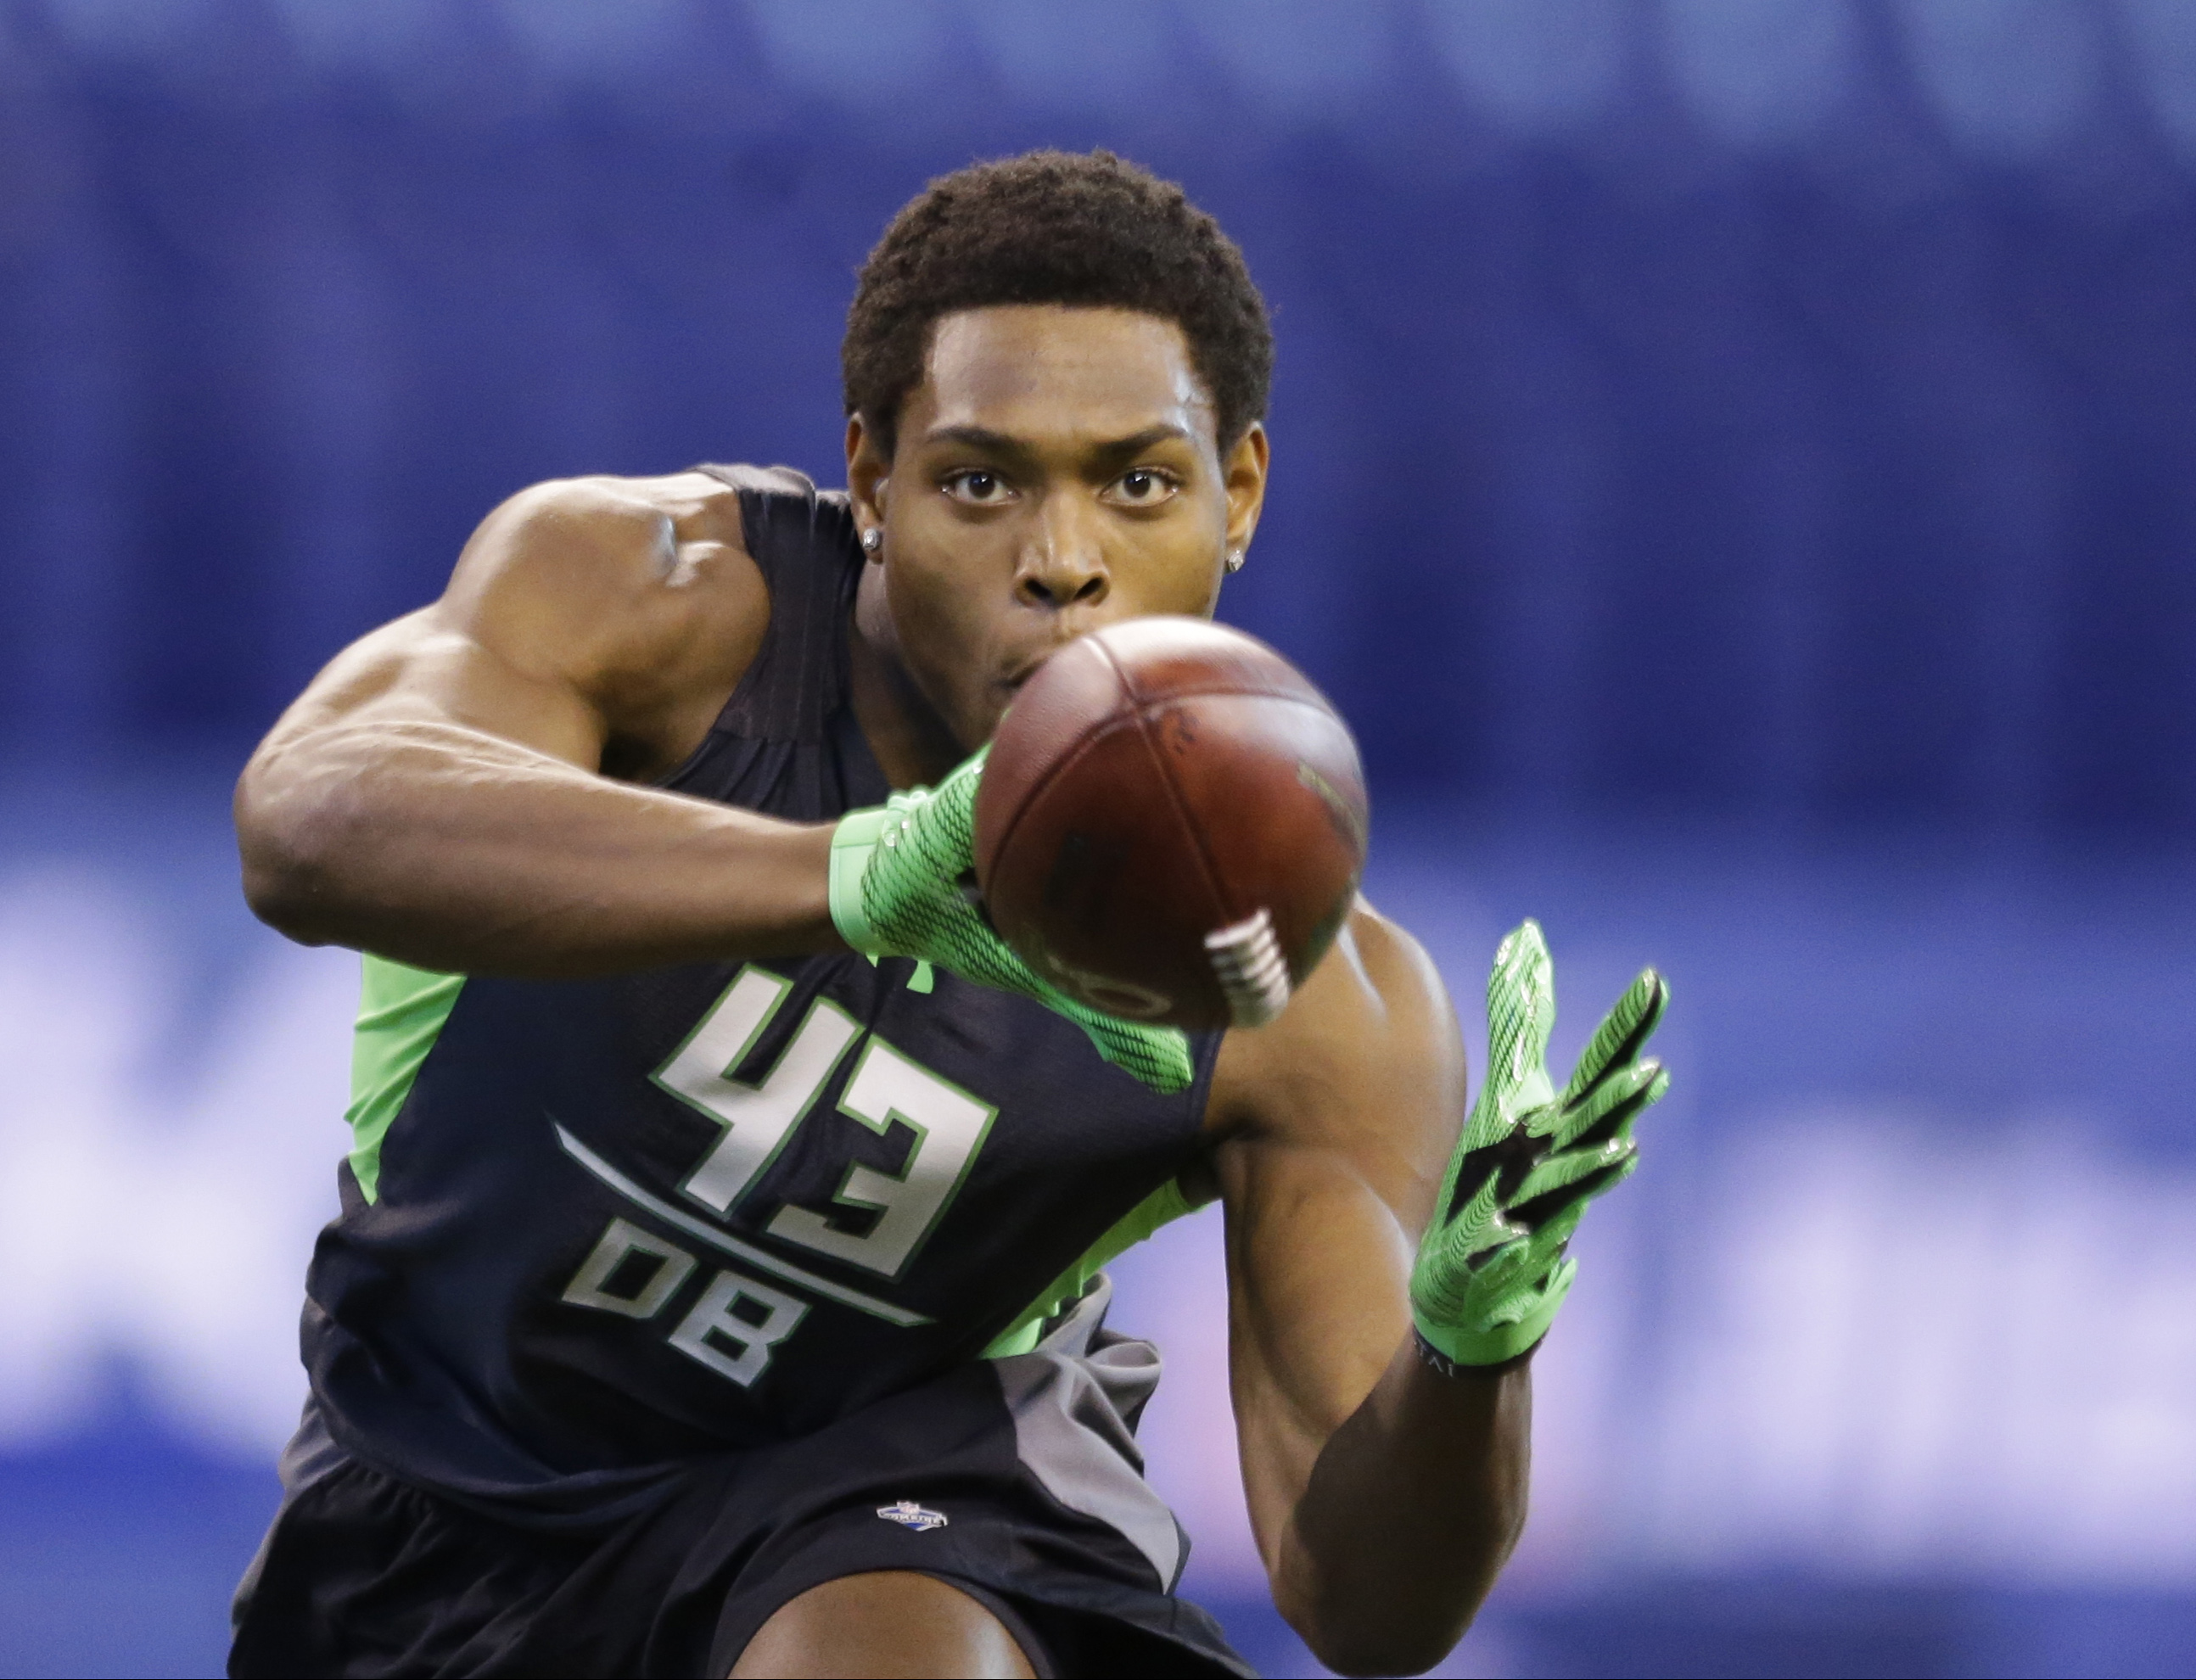 FILE - In this Feb. 29, 2016, file photo, Florida State defensive back Jalen Ramsey runs a drill at the NFL football scouting combine in Indianapolis. With the Rams and Eagles having traded up to secure the top two spots, where they have said they will ta